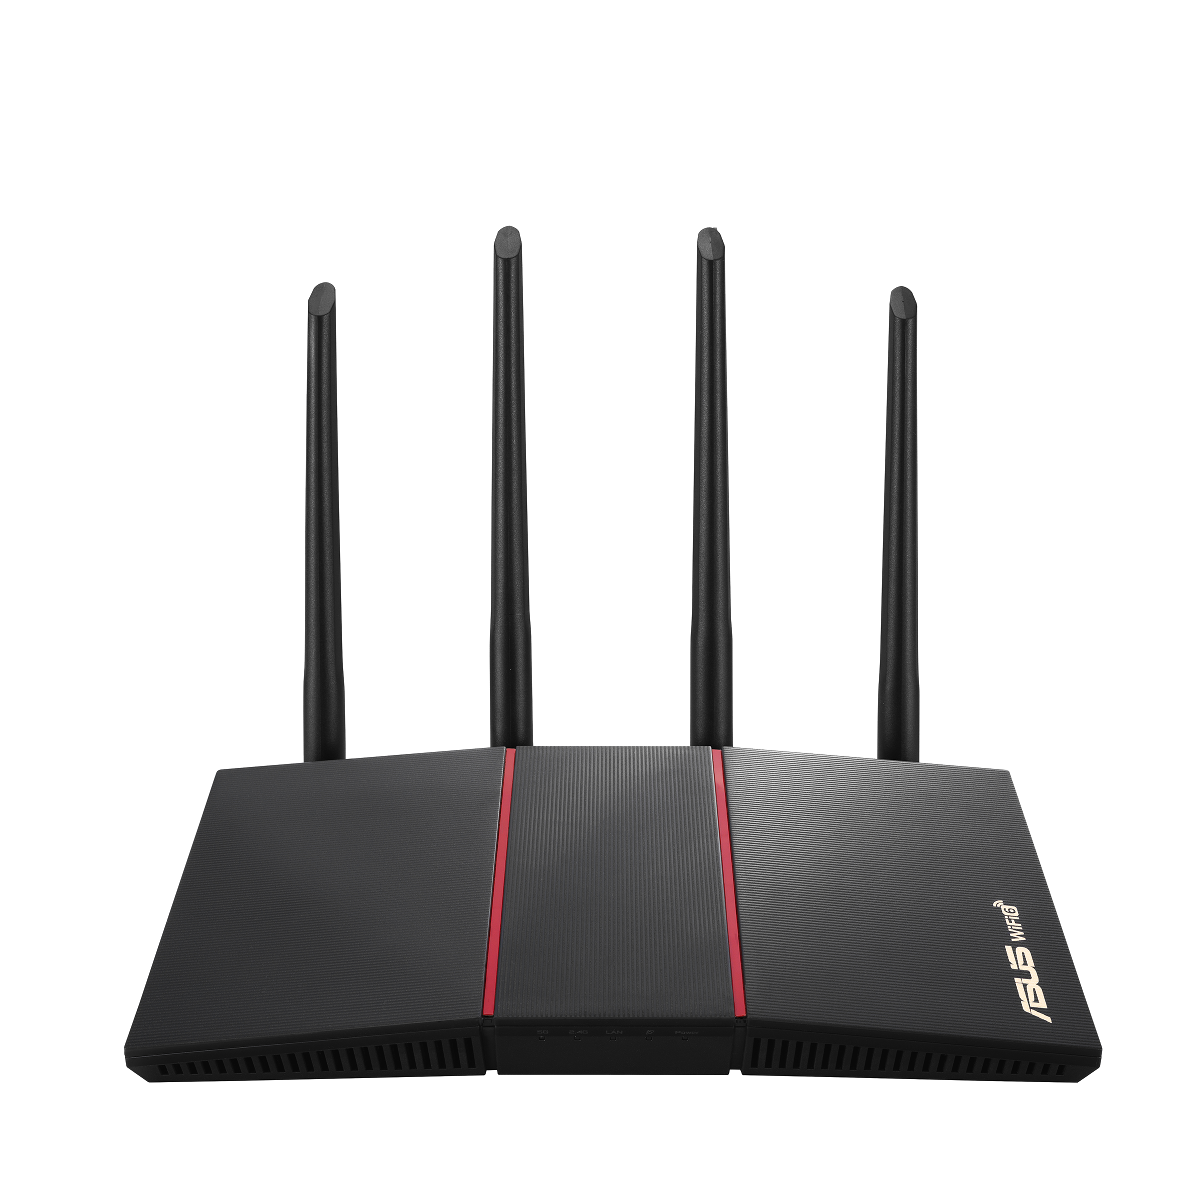 ASUS RT-AX55 AX1800 Dual Band WiFi 6 (802.11ax) Router supporting MU-MIMO